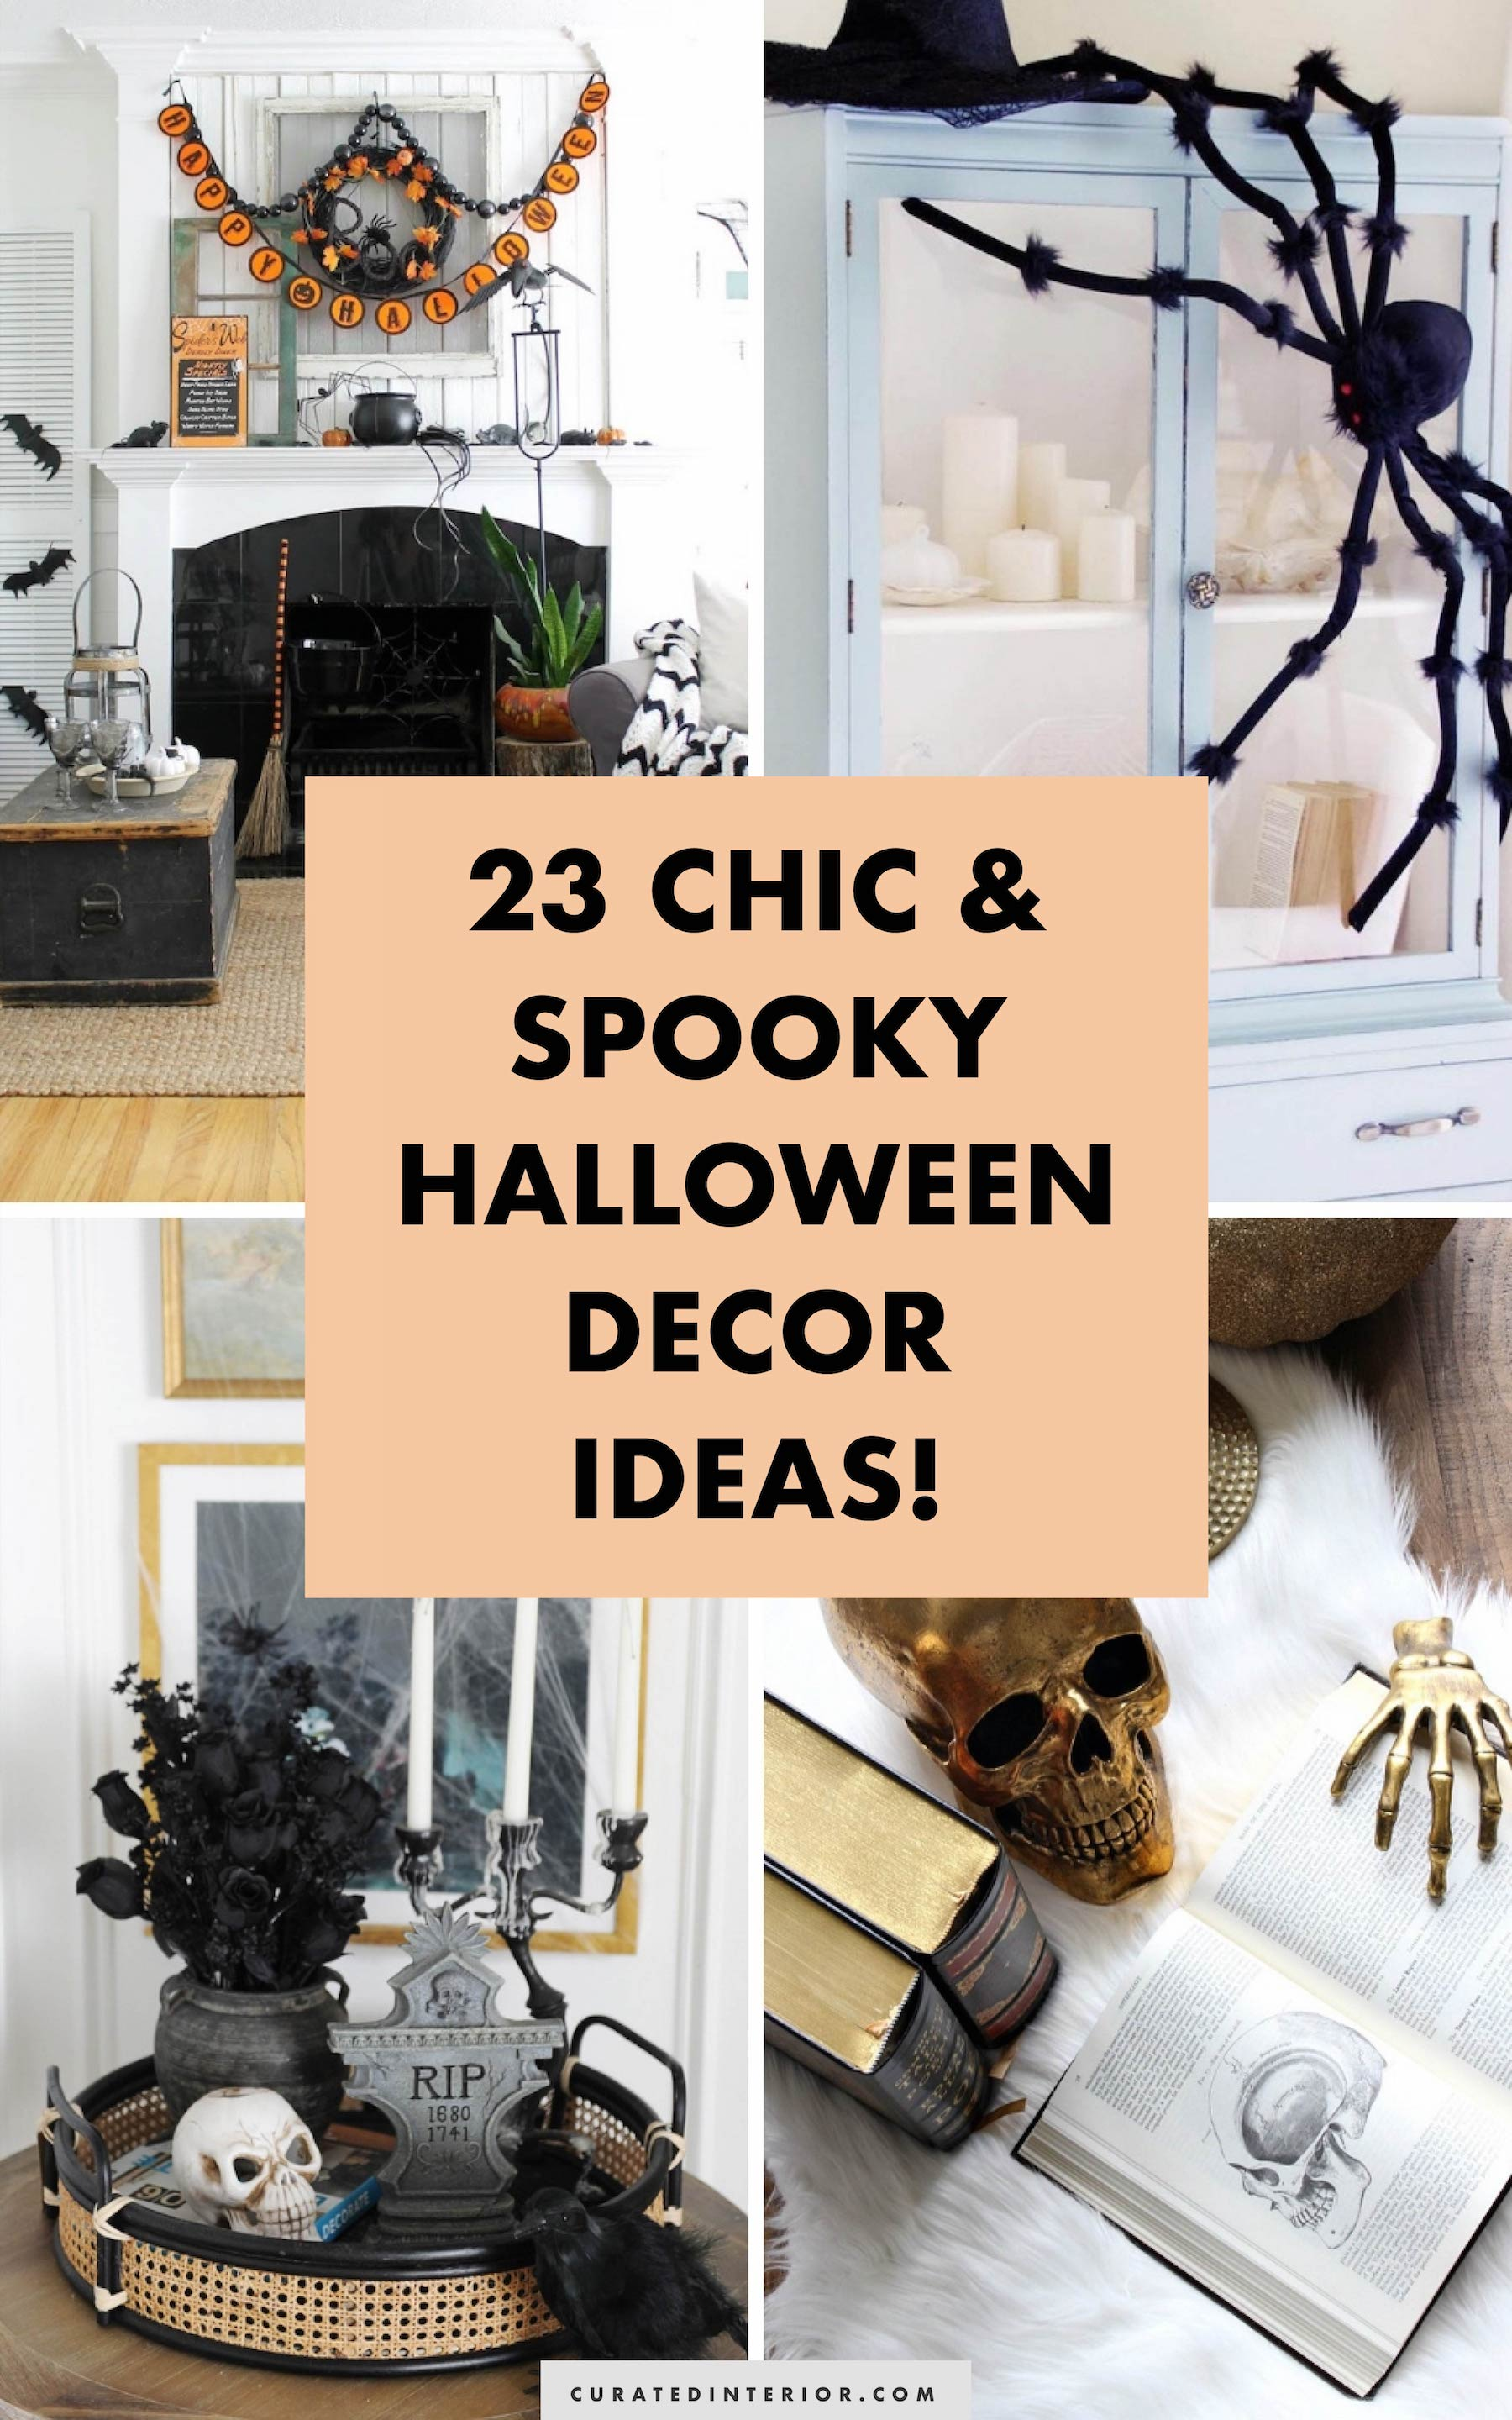 Chic But Spooky Halloween Decor Ideas To Inspire You